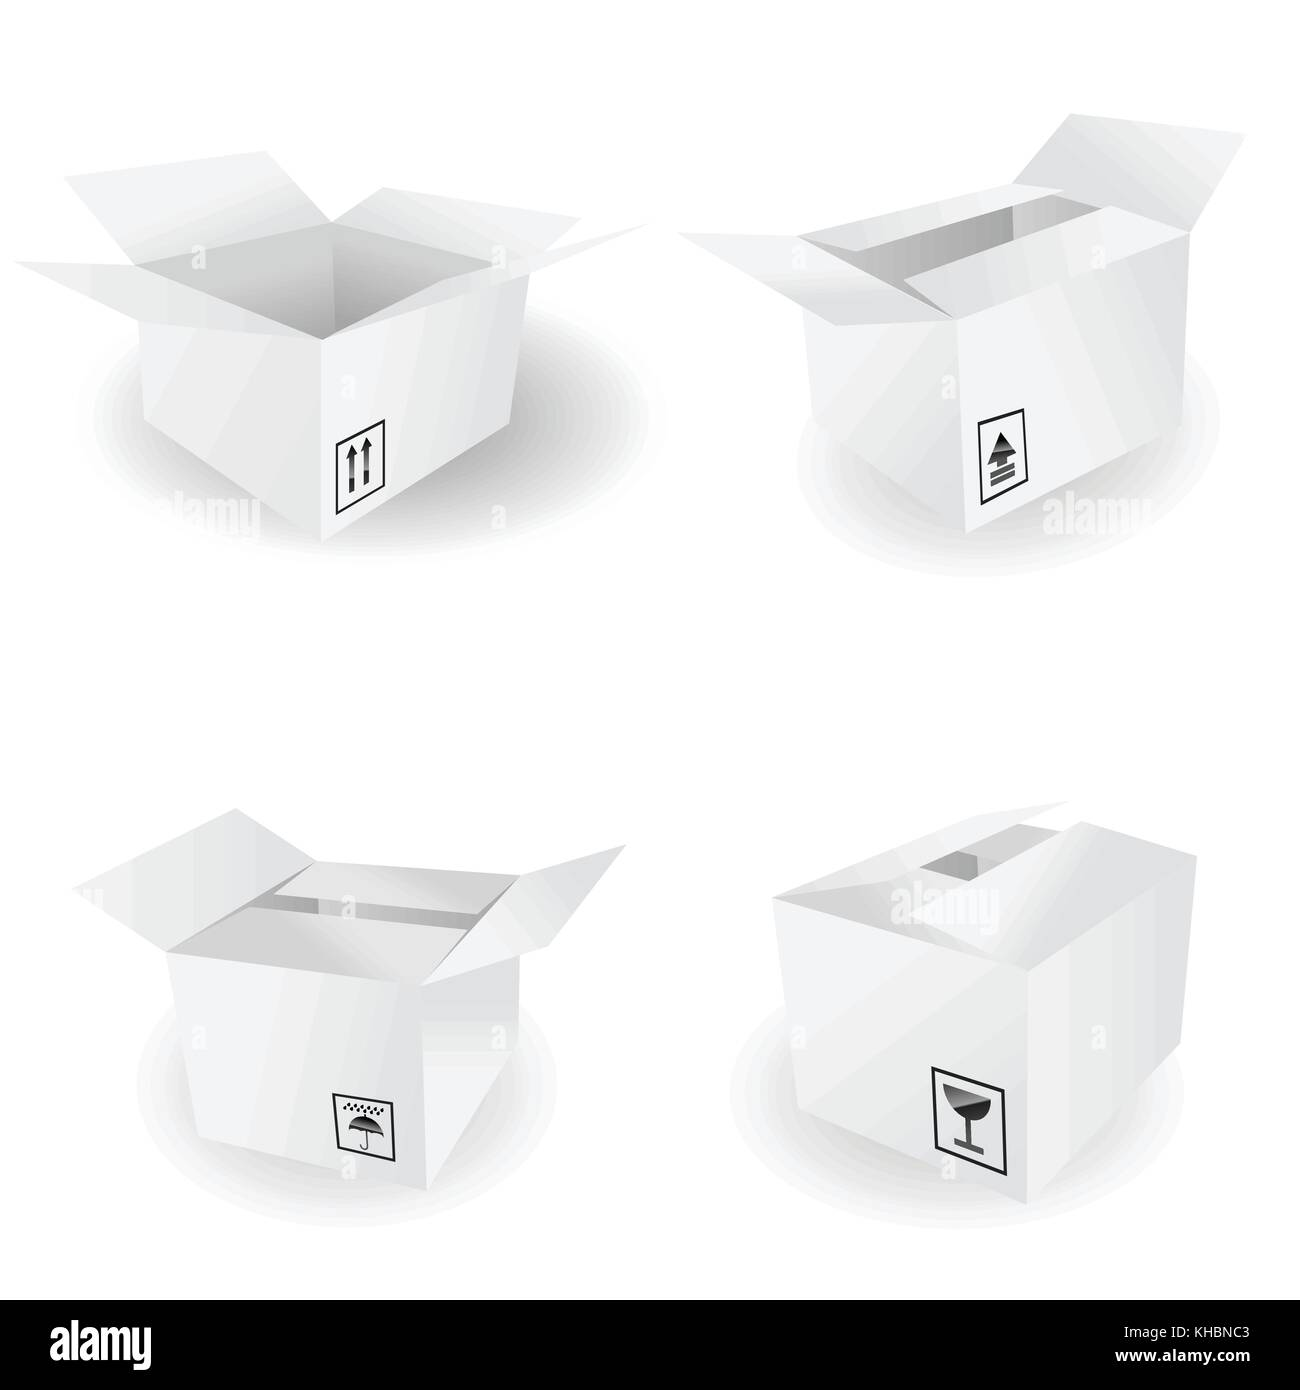 Box Icon and Signs icons - vector icon set - Stock Image